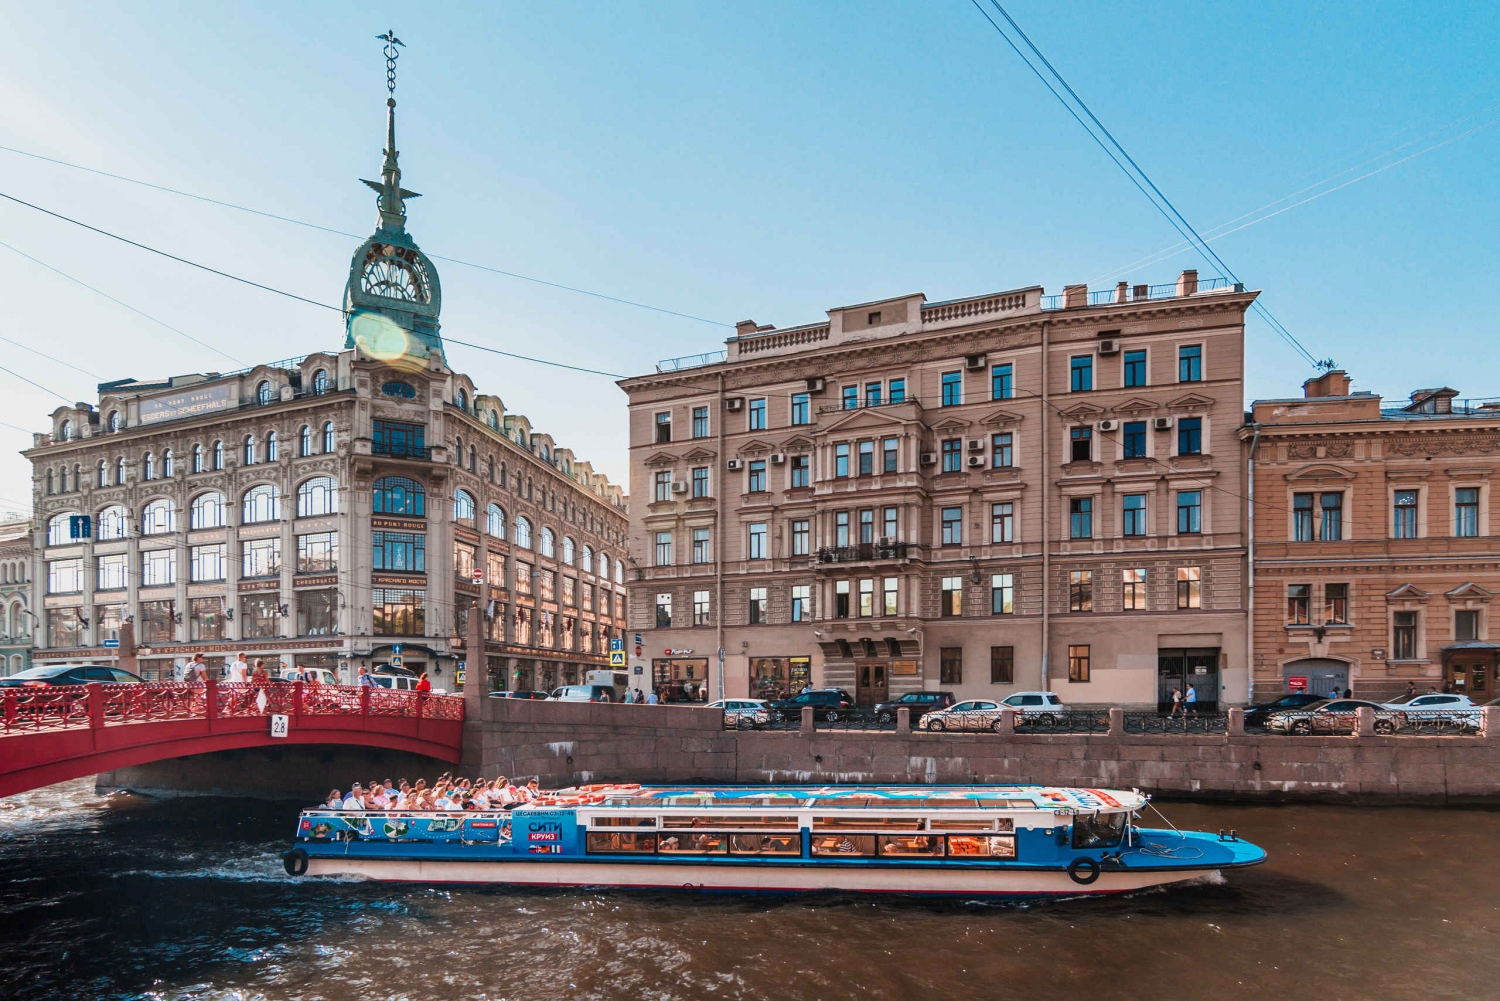 St. Petersburg: Hop-On Hop-Off City Cruise